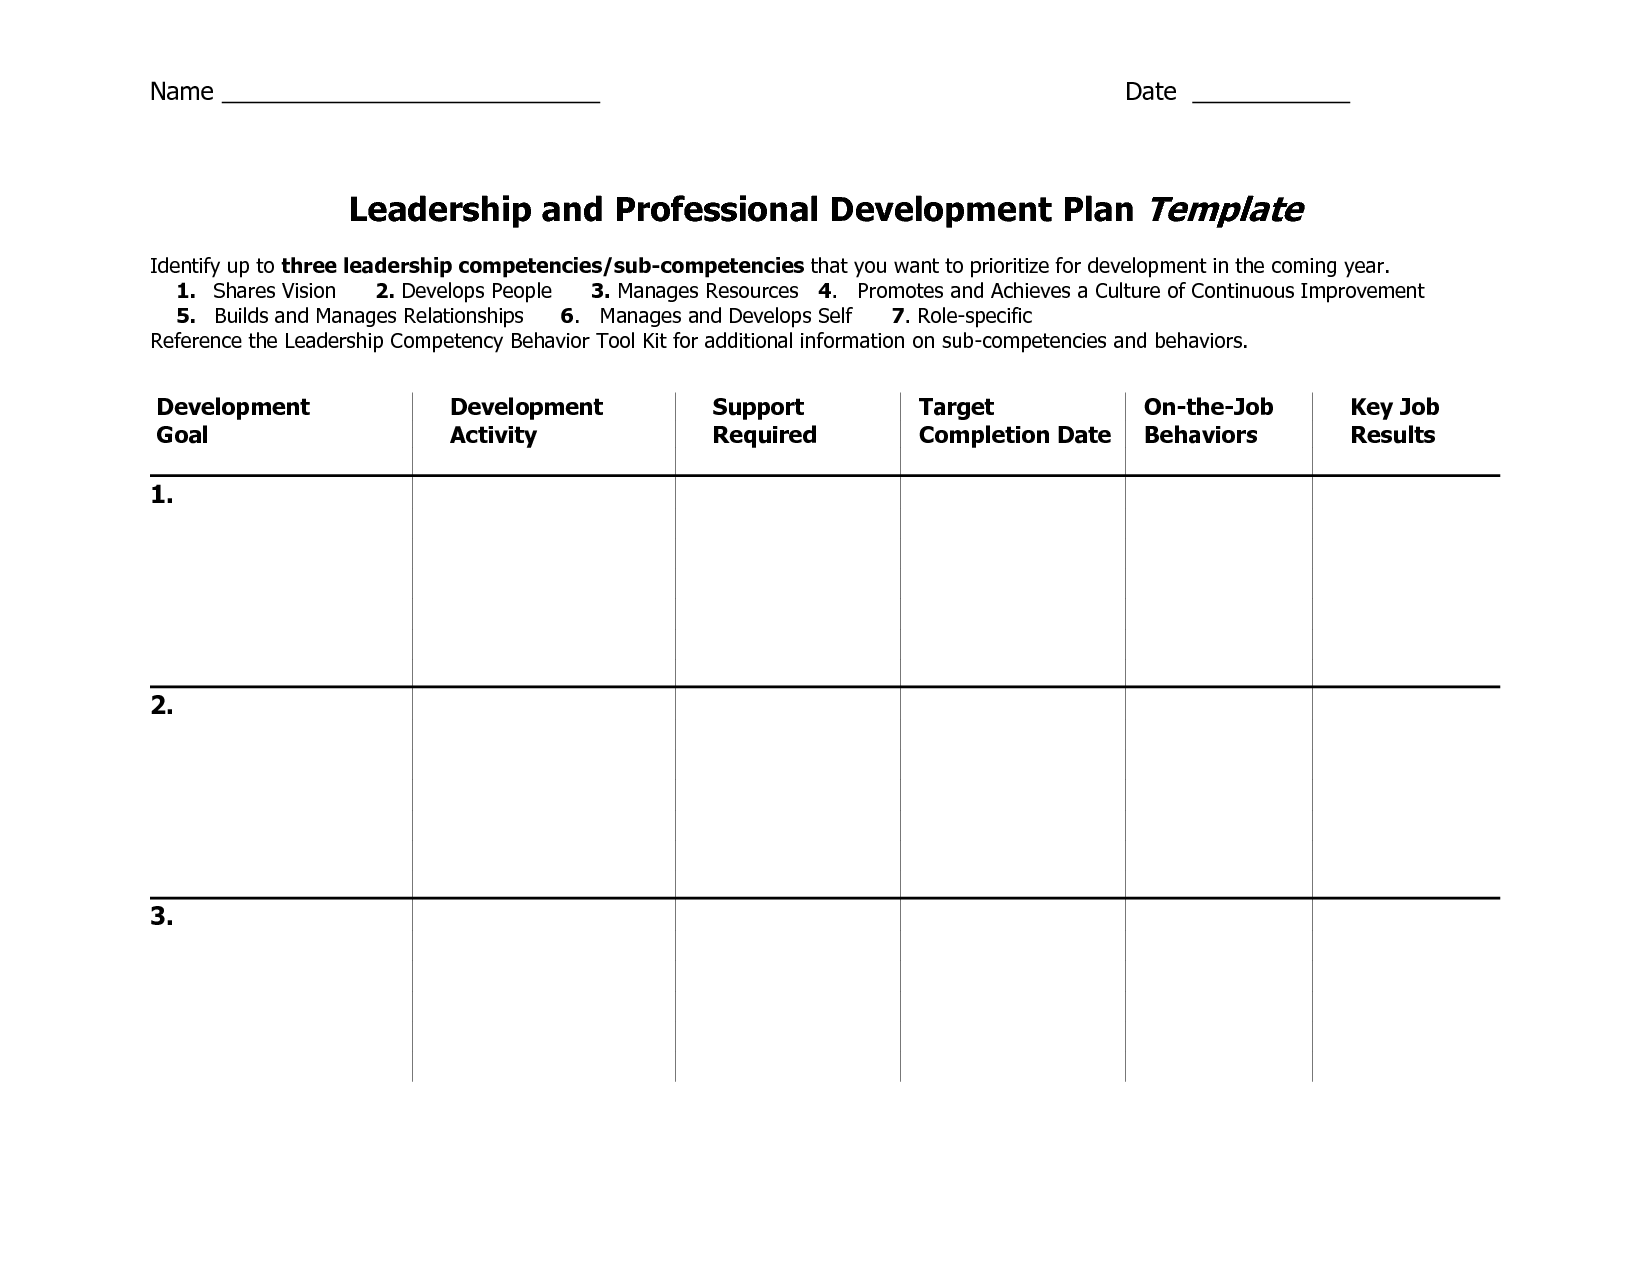 individual development plan template word Google Search – Succession Planning Template